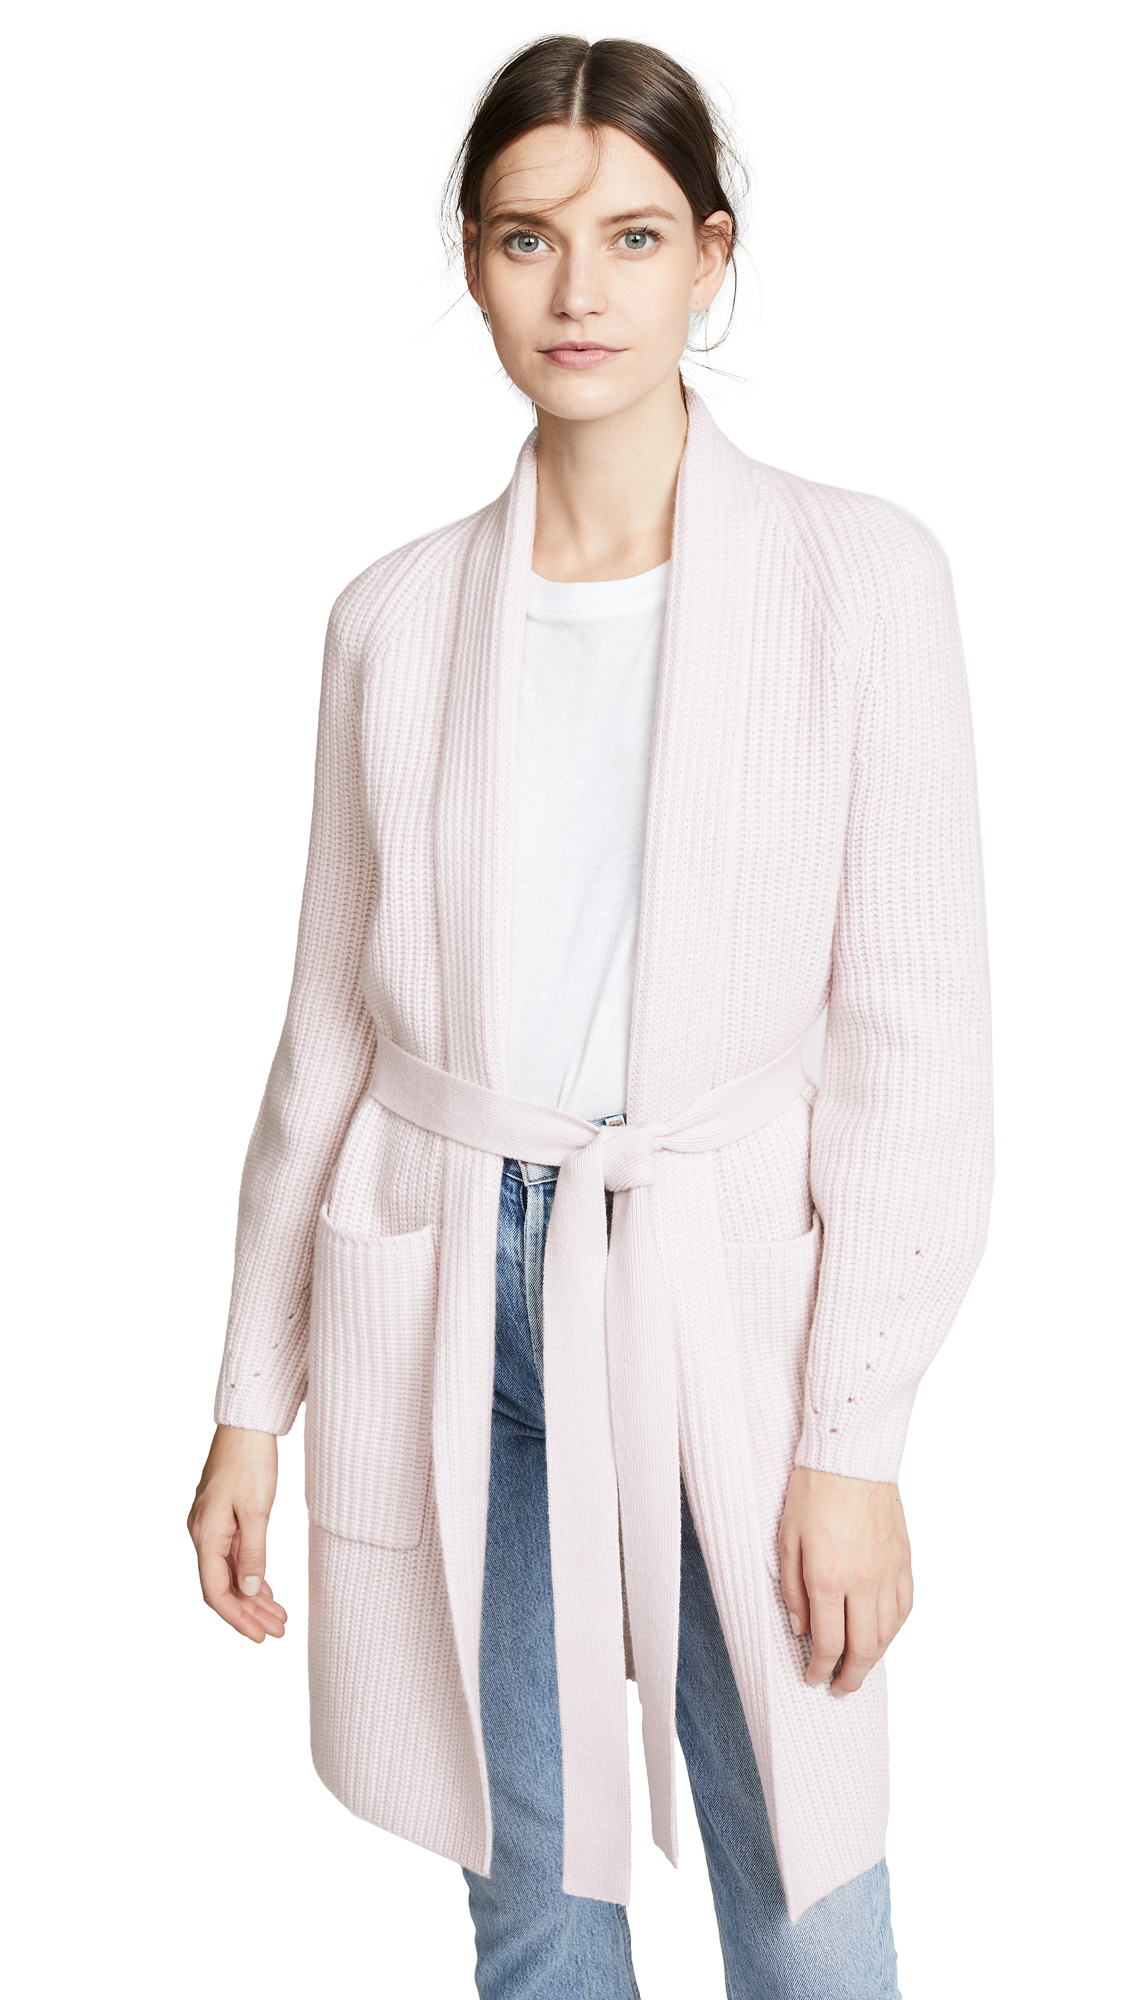 TSE CASHMERE Cashmere Cardigan Coat With Belt in Milky Pink